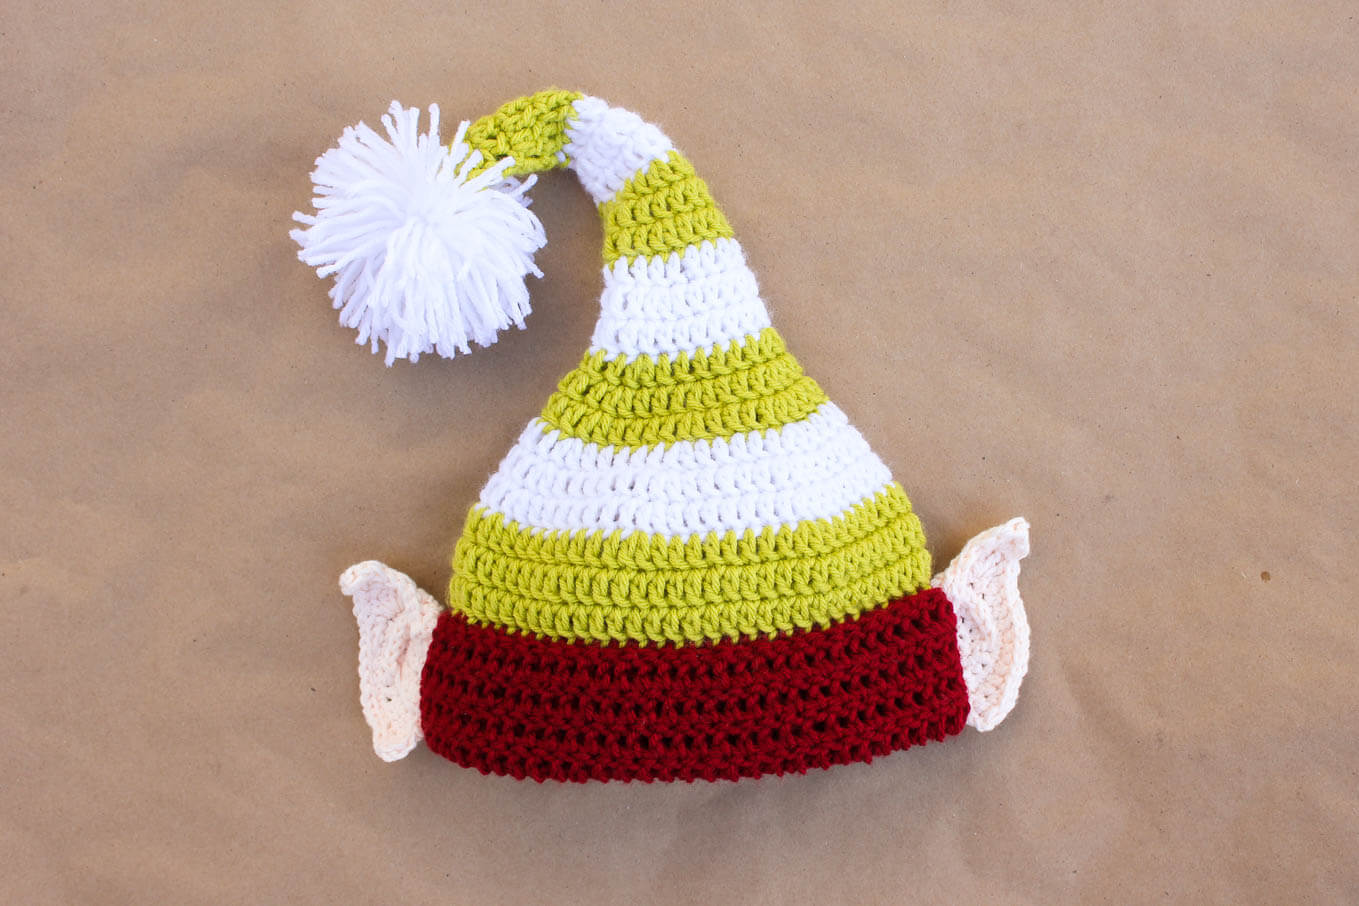 Free Crochet Pattern Long Elf Hat : Santas Helper Free Crochet Elf Hat Pattern (With Ears!)